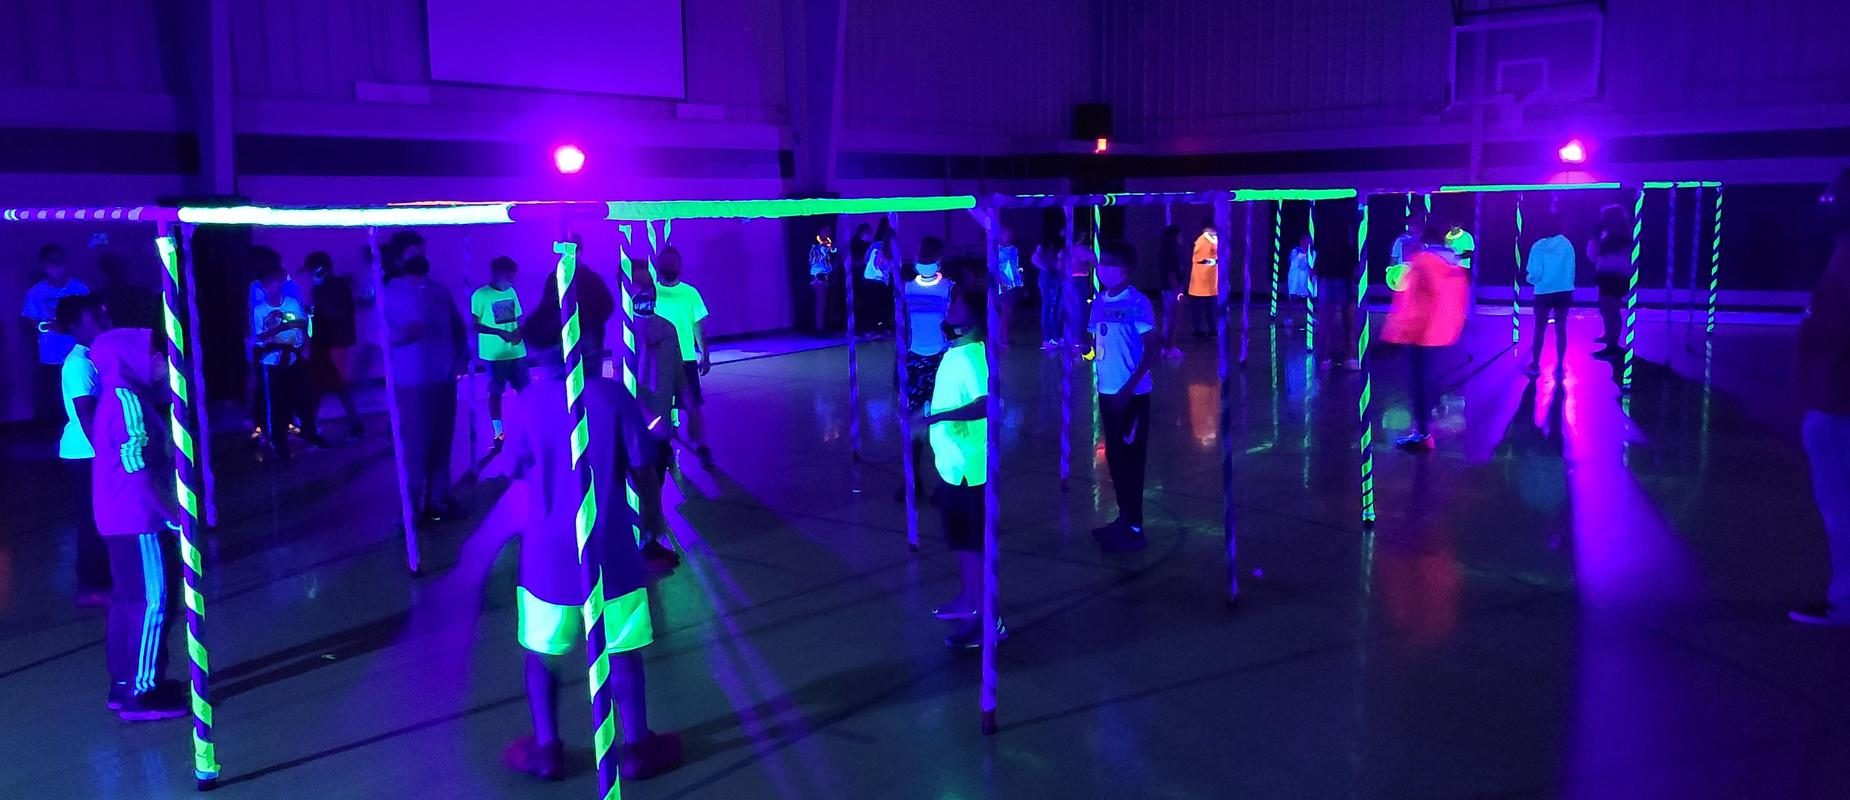 Glowing lights and poles with children